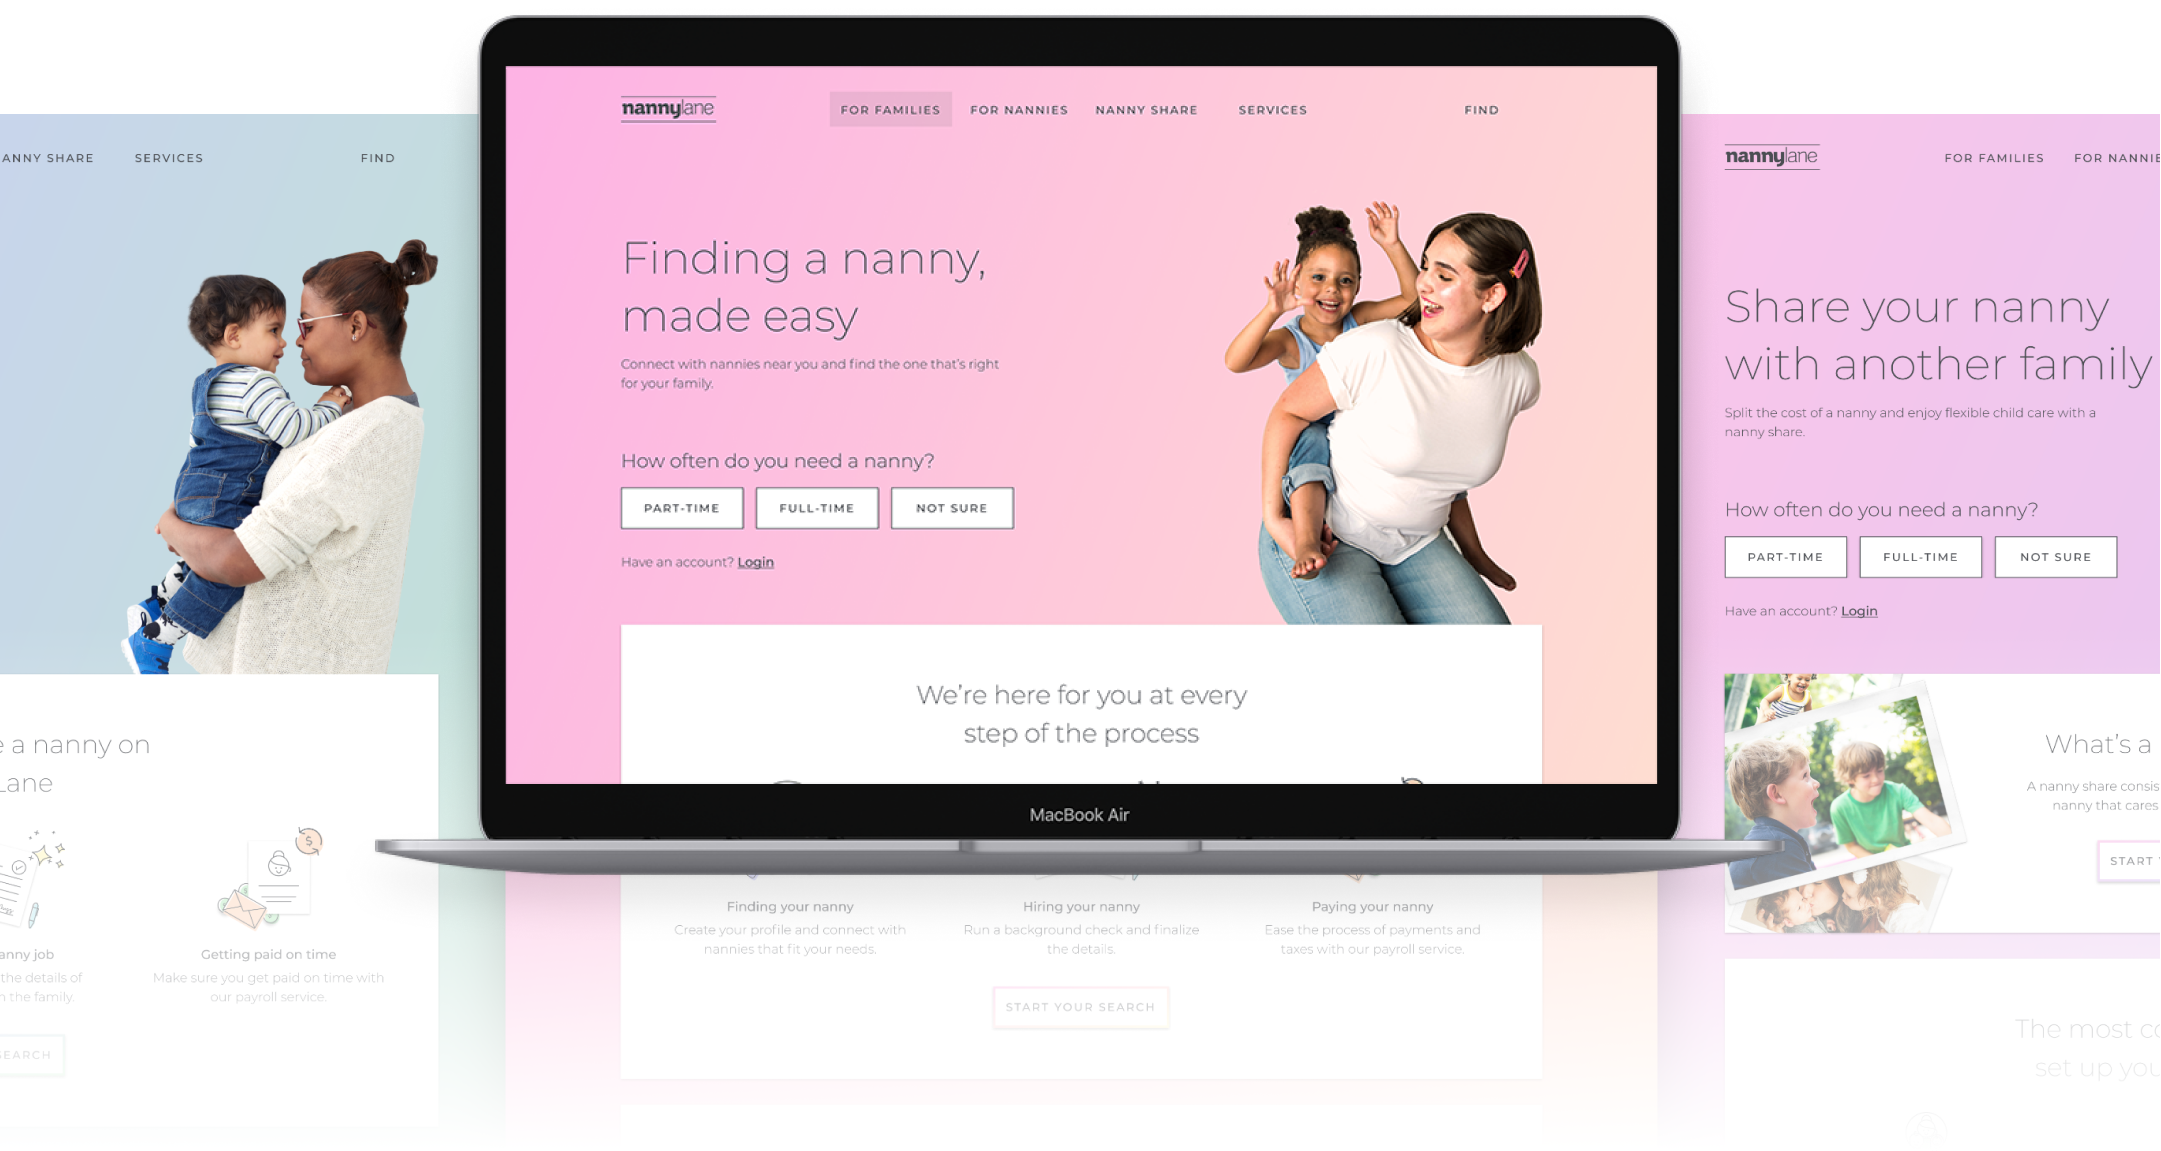 Photos of the landing web pages for the Nanny Lane brand displayed side by side with a laptop